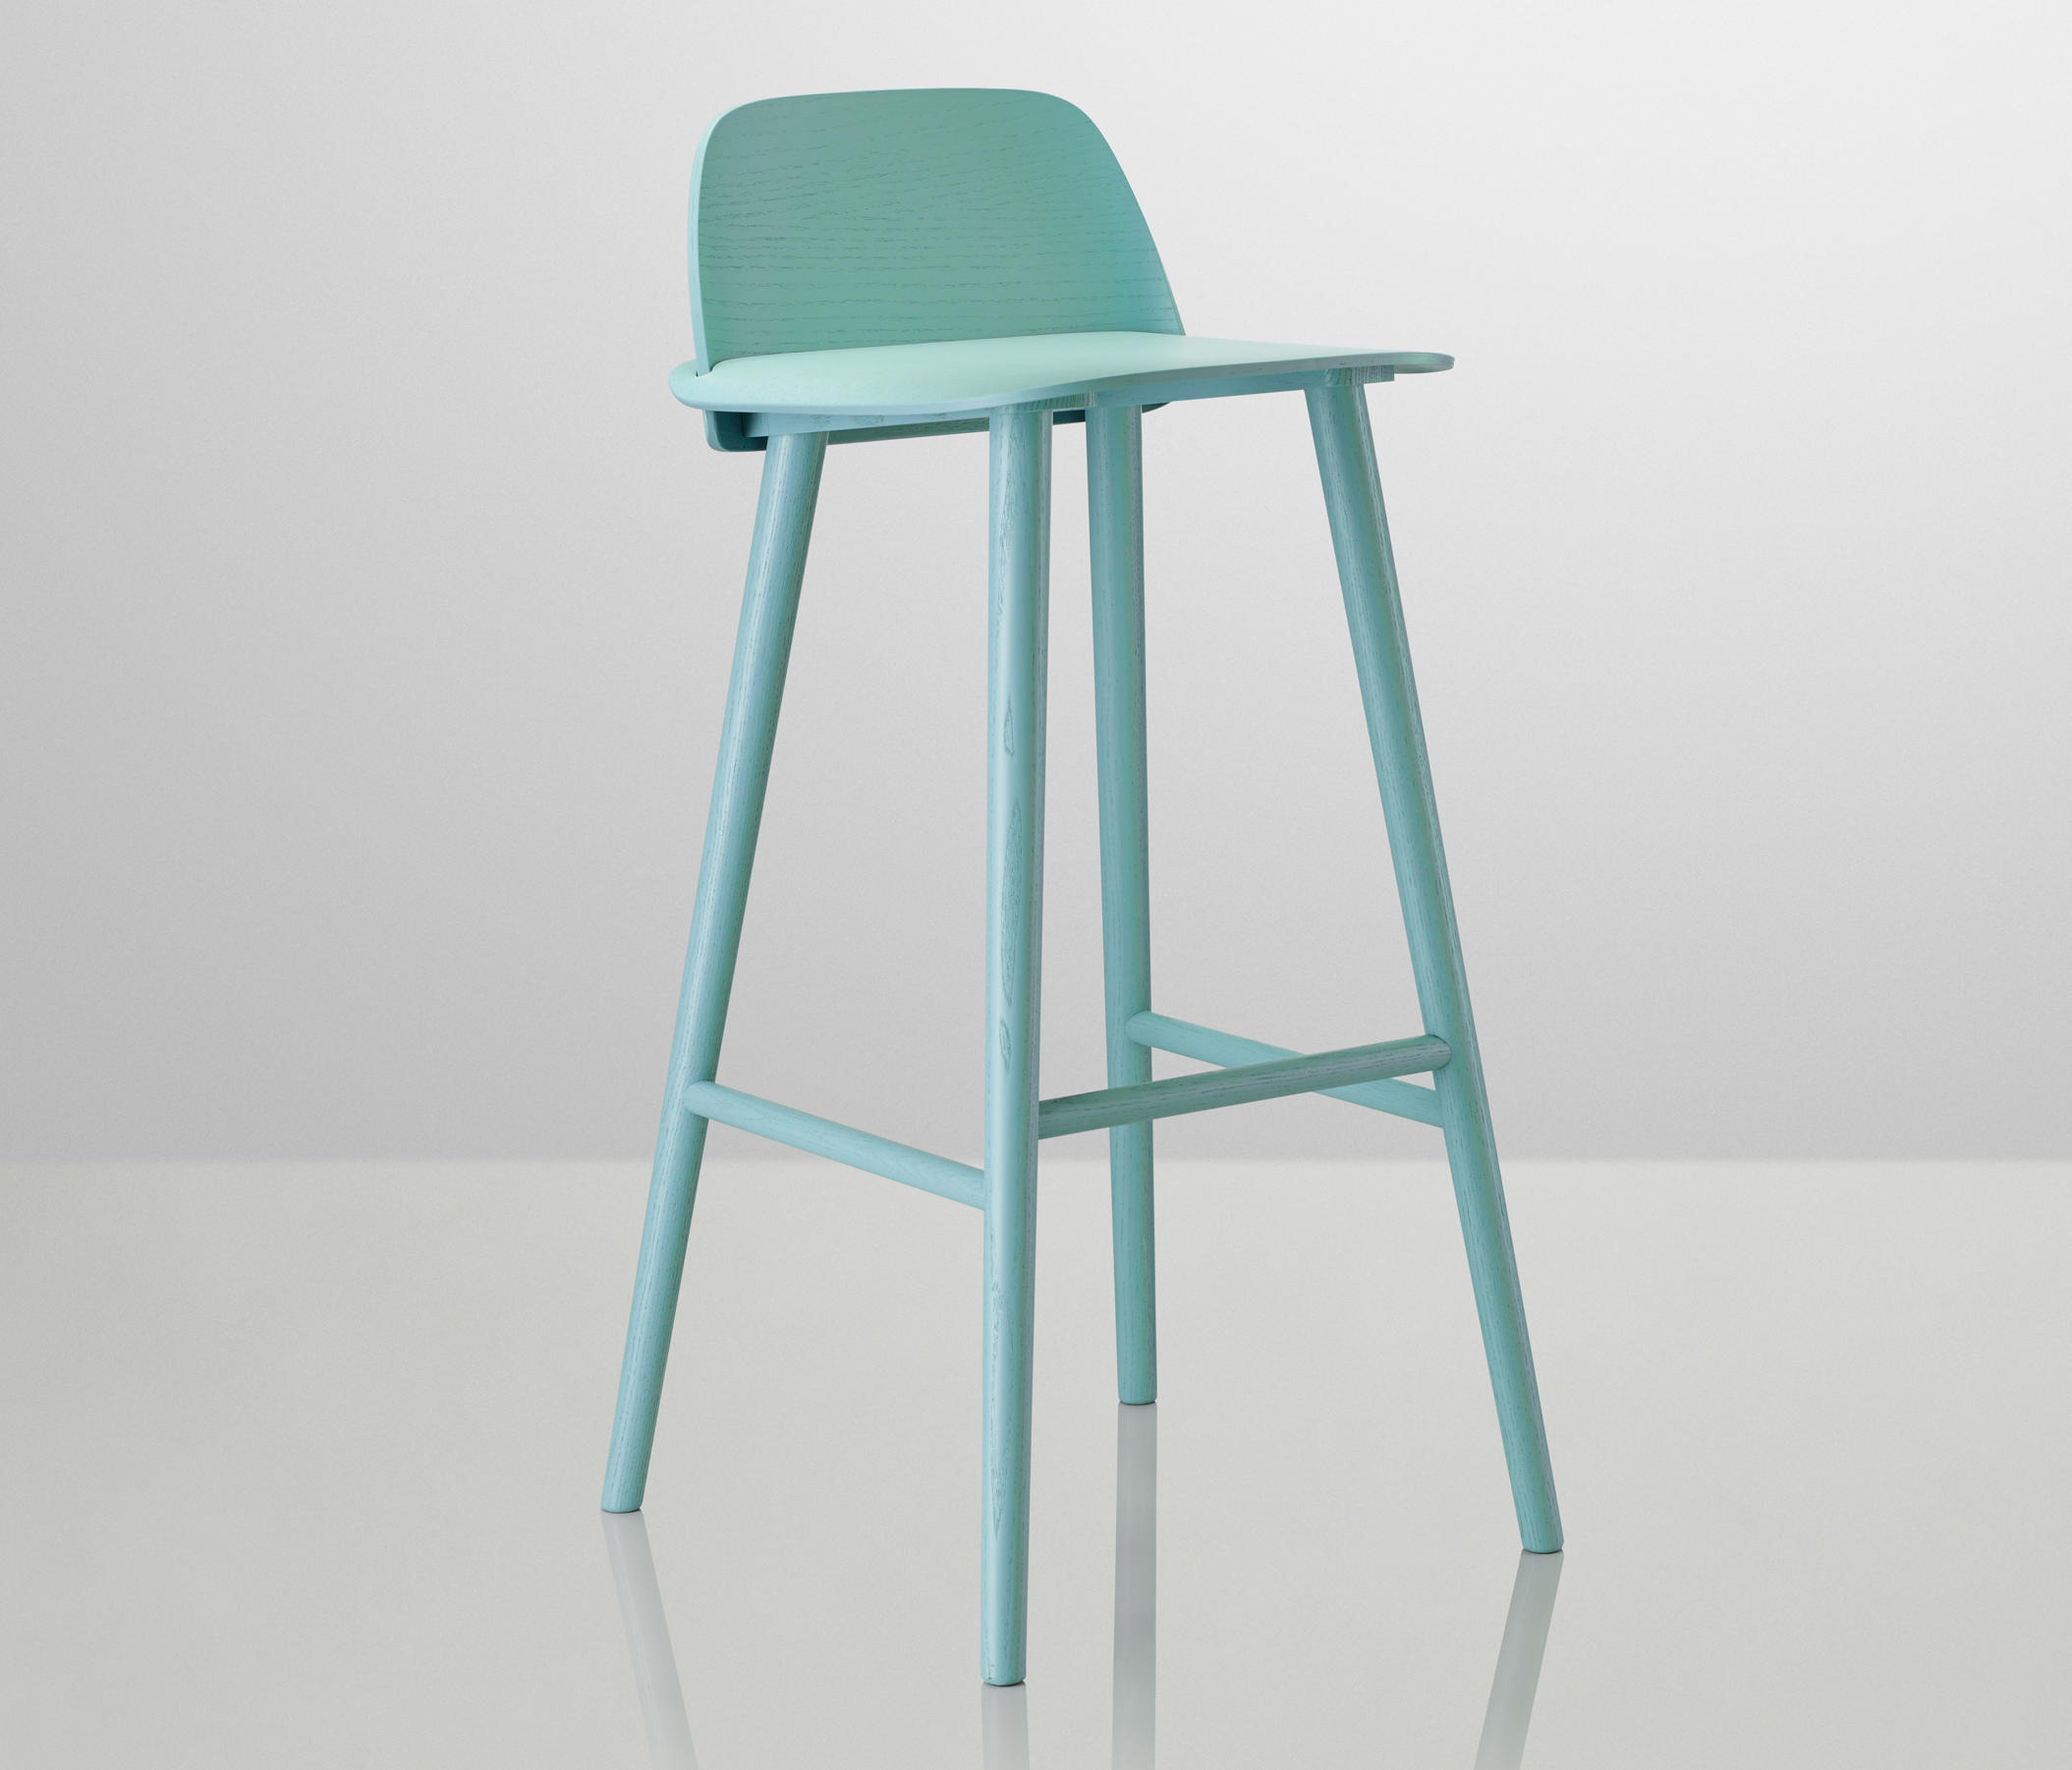 NERD BAR STOOL | HIGH - Bar stools from Muuto | Architonic